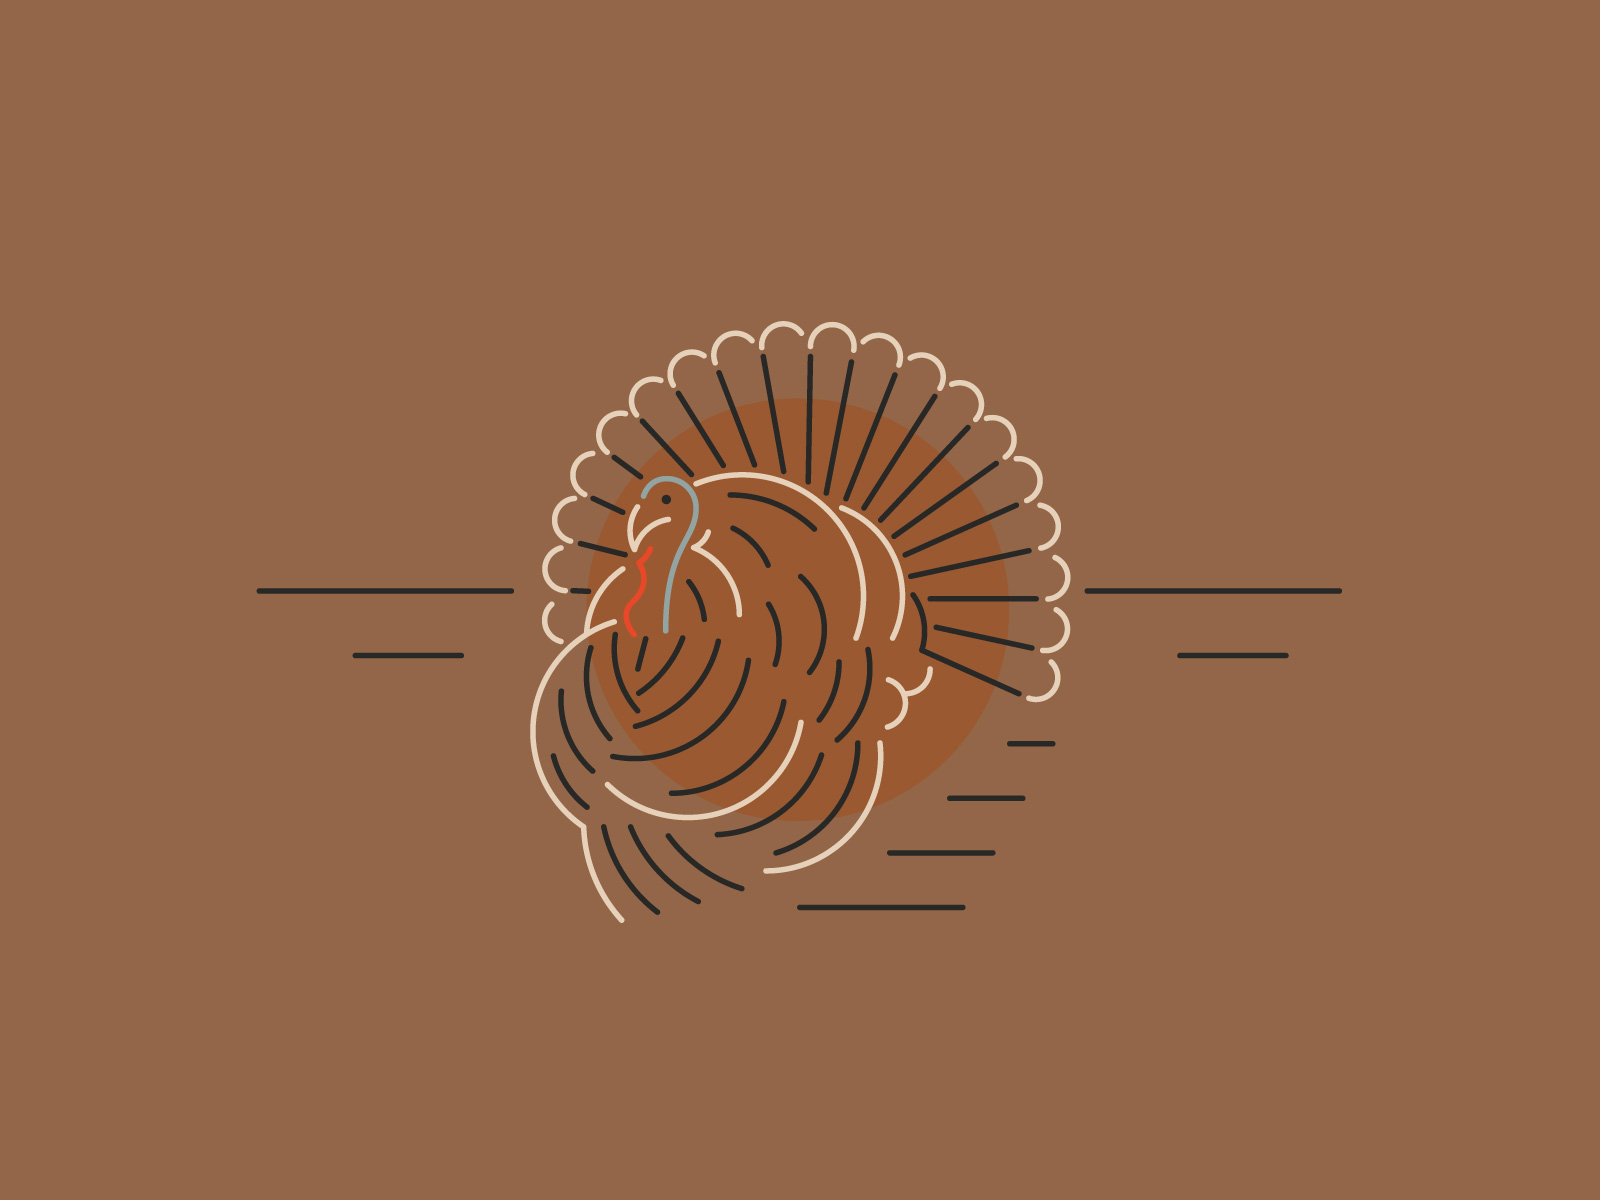 Turkey Day - Wanted to have some fun with all the circles that make up the shape of a turkey, for this Thanksgiving card.